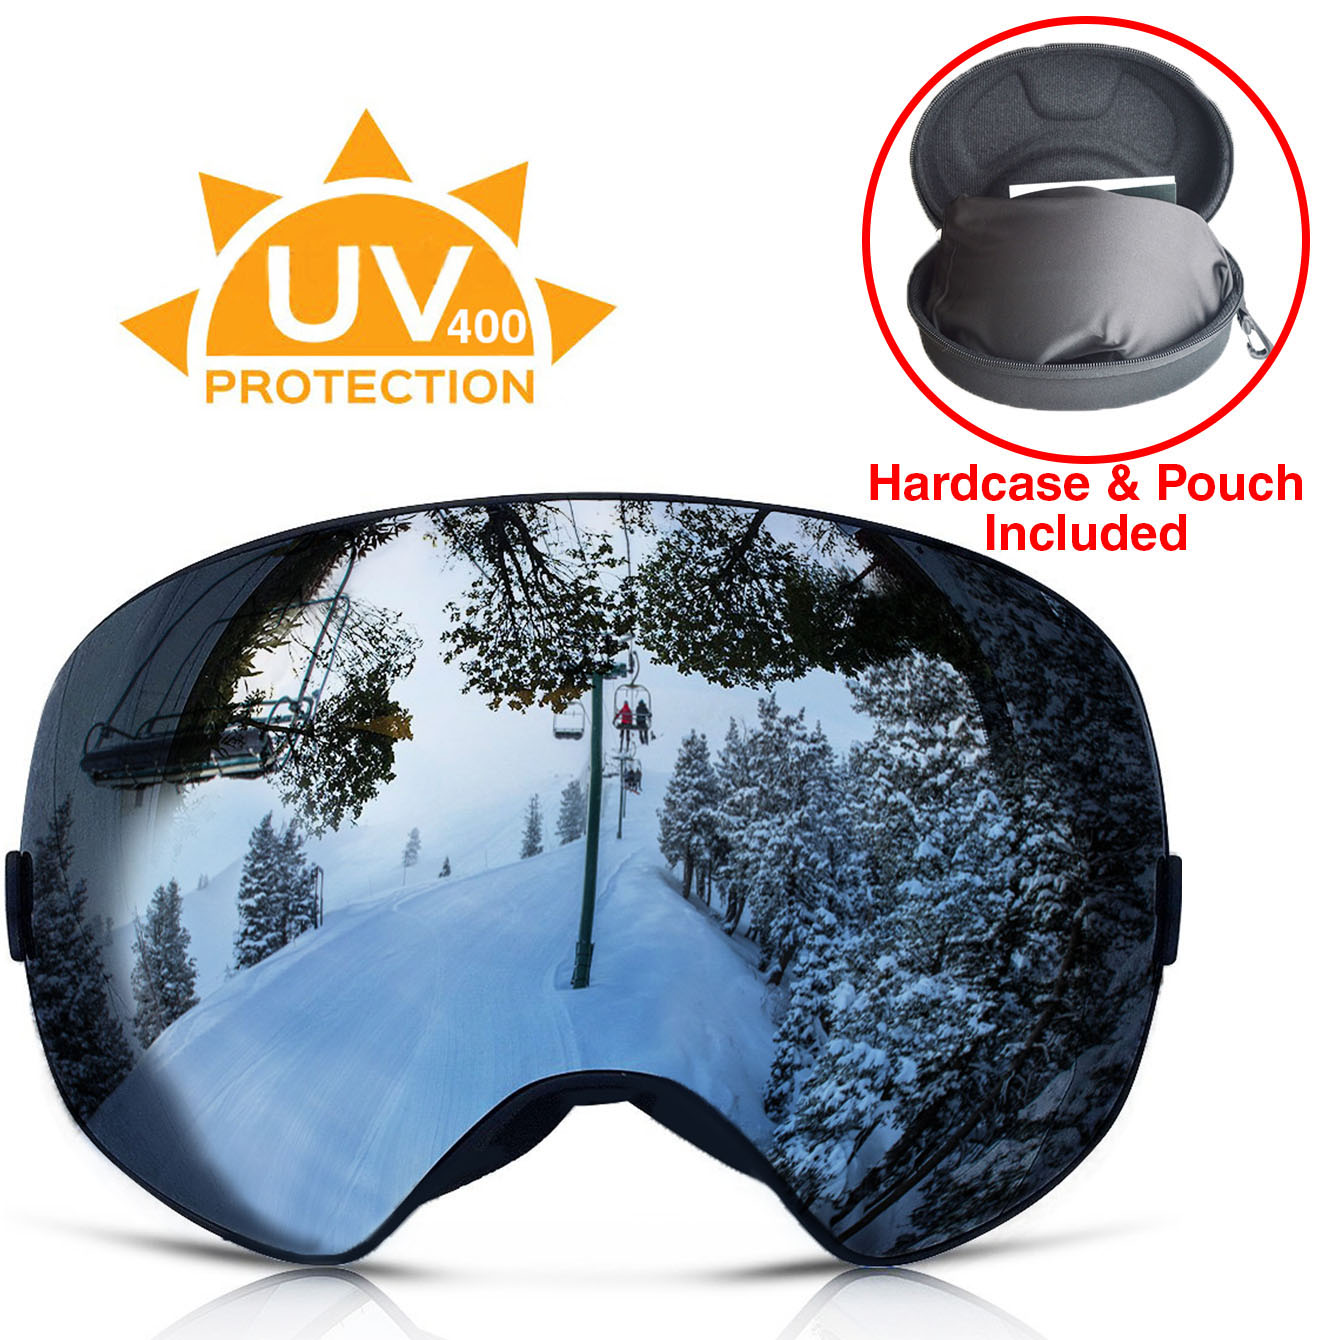 Xspec UV400 Snowboard Ski Snow Goggles w  Detachable Mirror Lens & Case, Black Anti Fog by Clevr